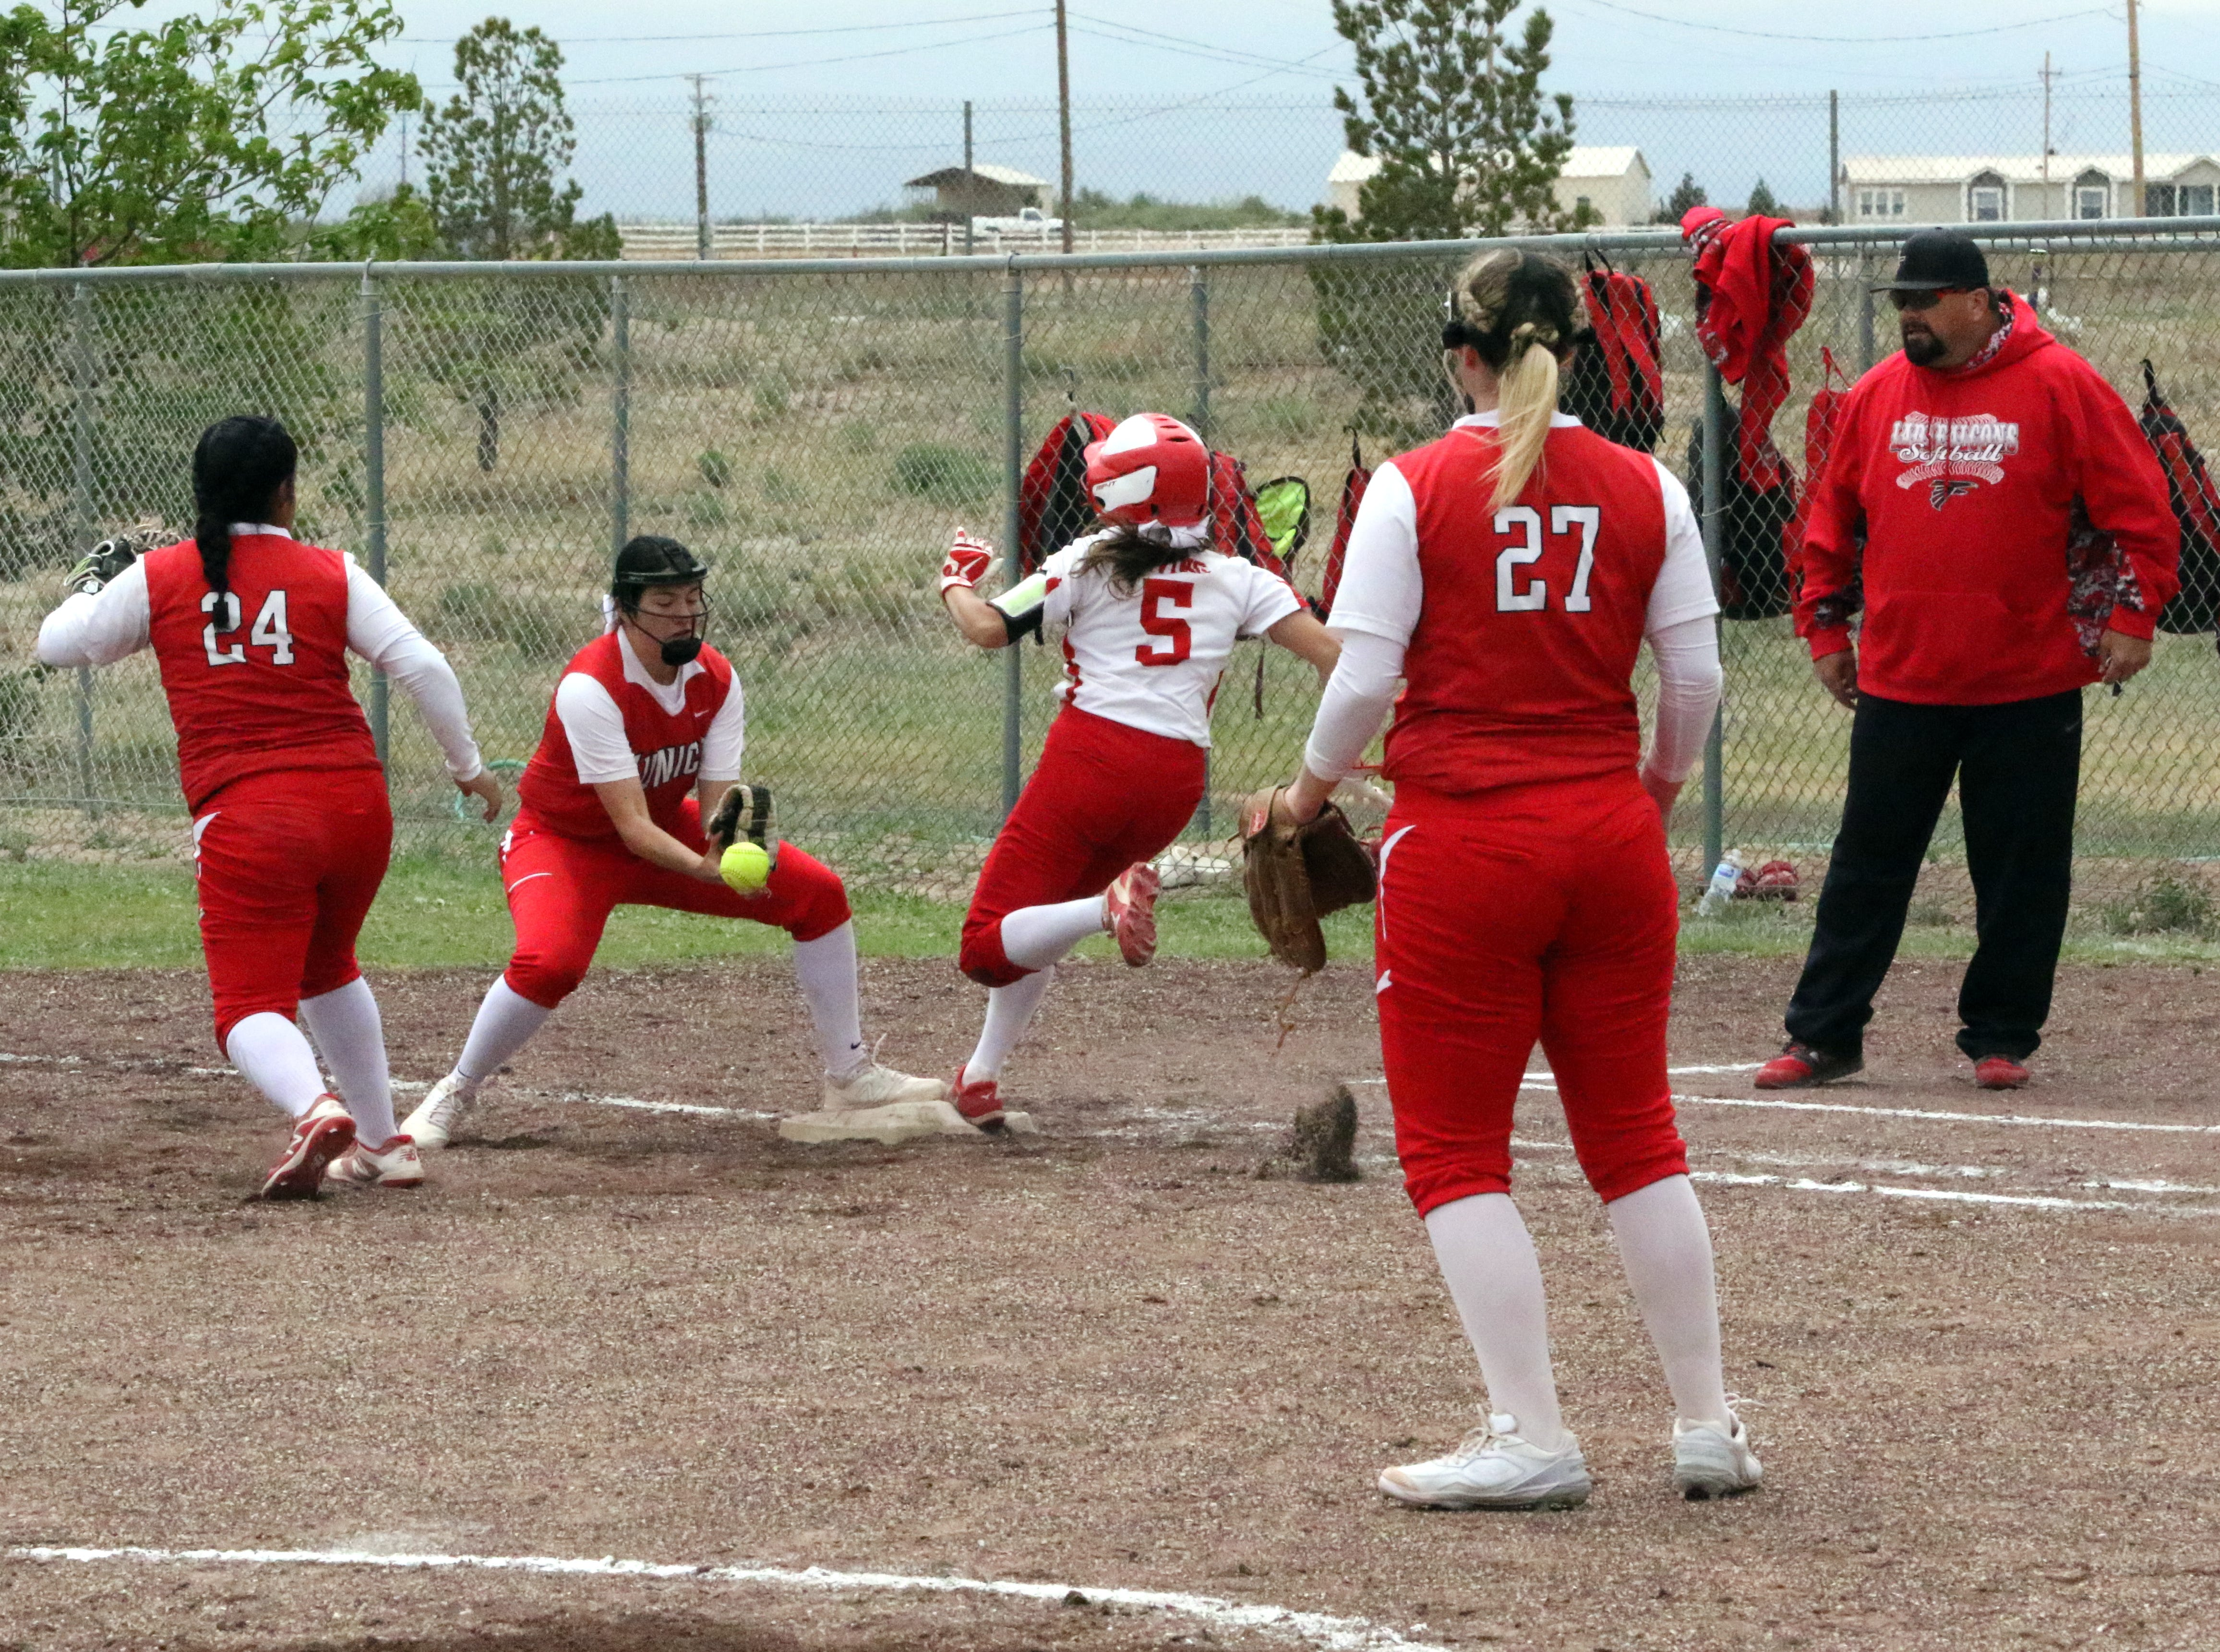 Anyssa Rodriguez (5) beats out a throw to first base during Game 1 of Saturday's doubleheader. Eunice won Game 1, 13-12 and Loving won Game 2, 16-6.